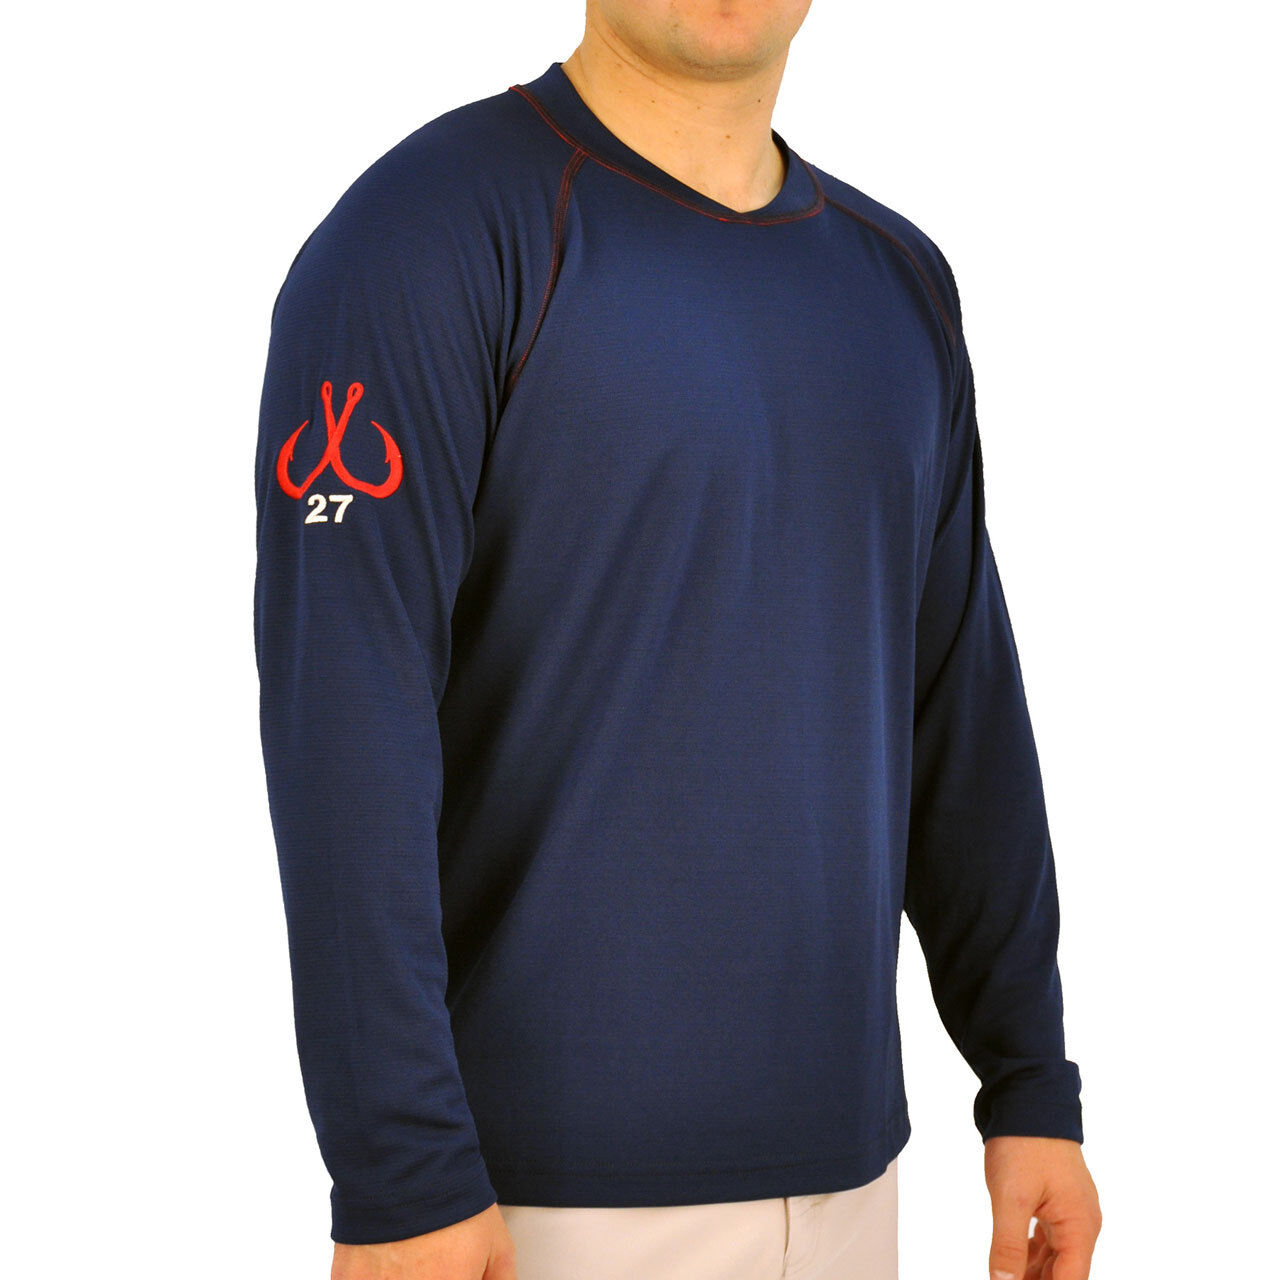 Montauk Tackle Co. SCUBA Stitch Perforuomoce Crew ShirtPick ColoreeDiuominiionegratuito Ship